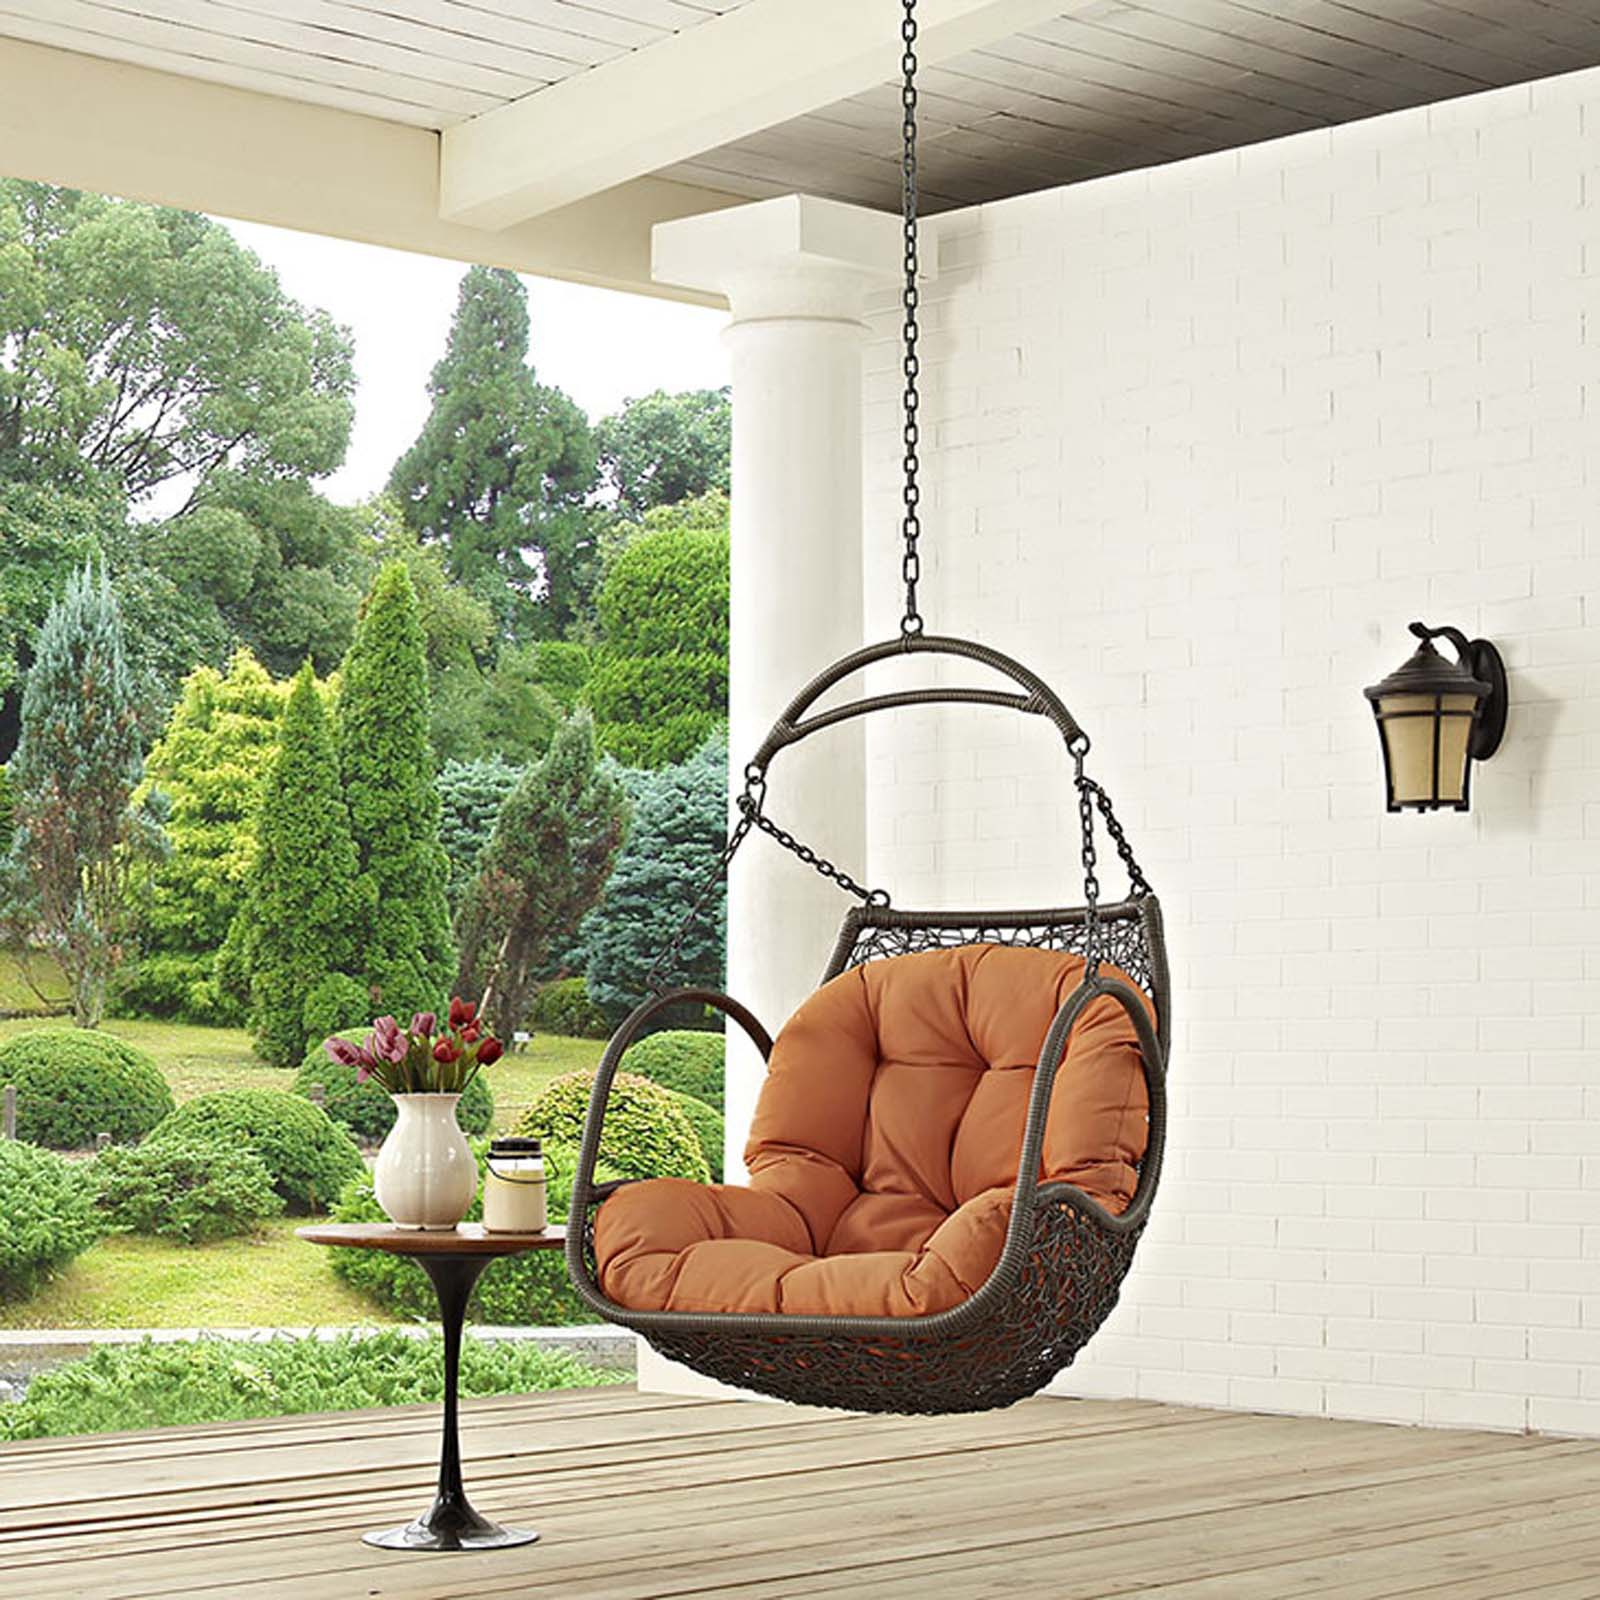 Modterior Outdoor Outdoor Chairs Arbor Outdoor